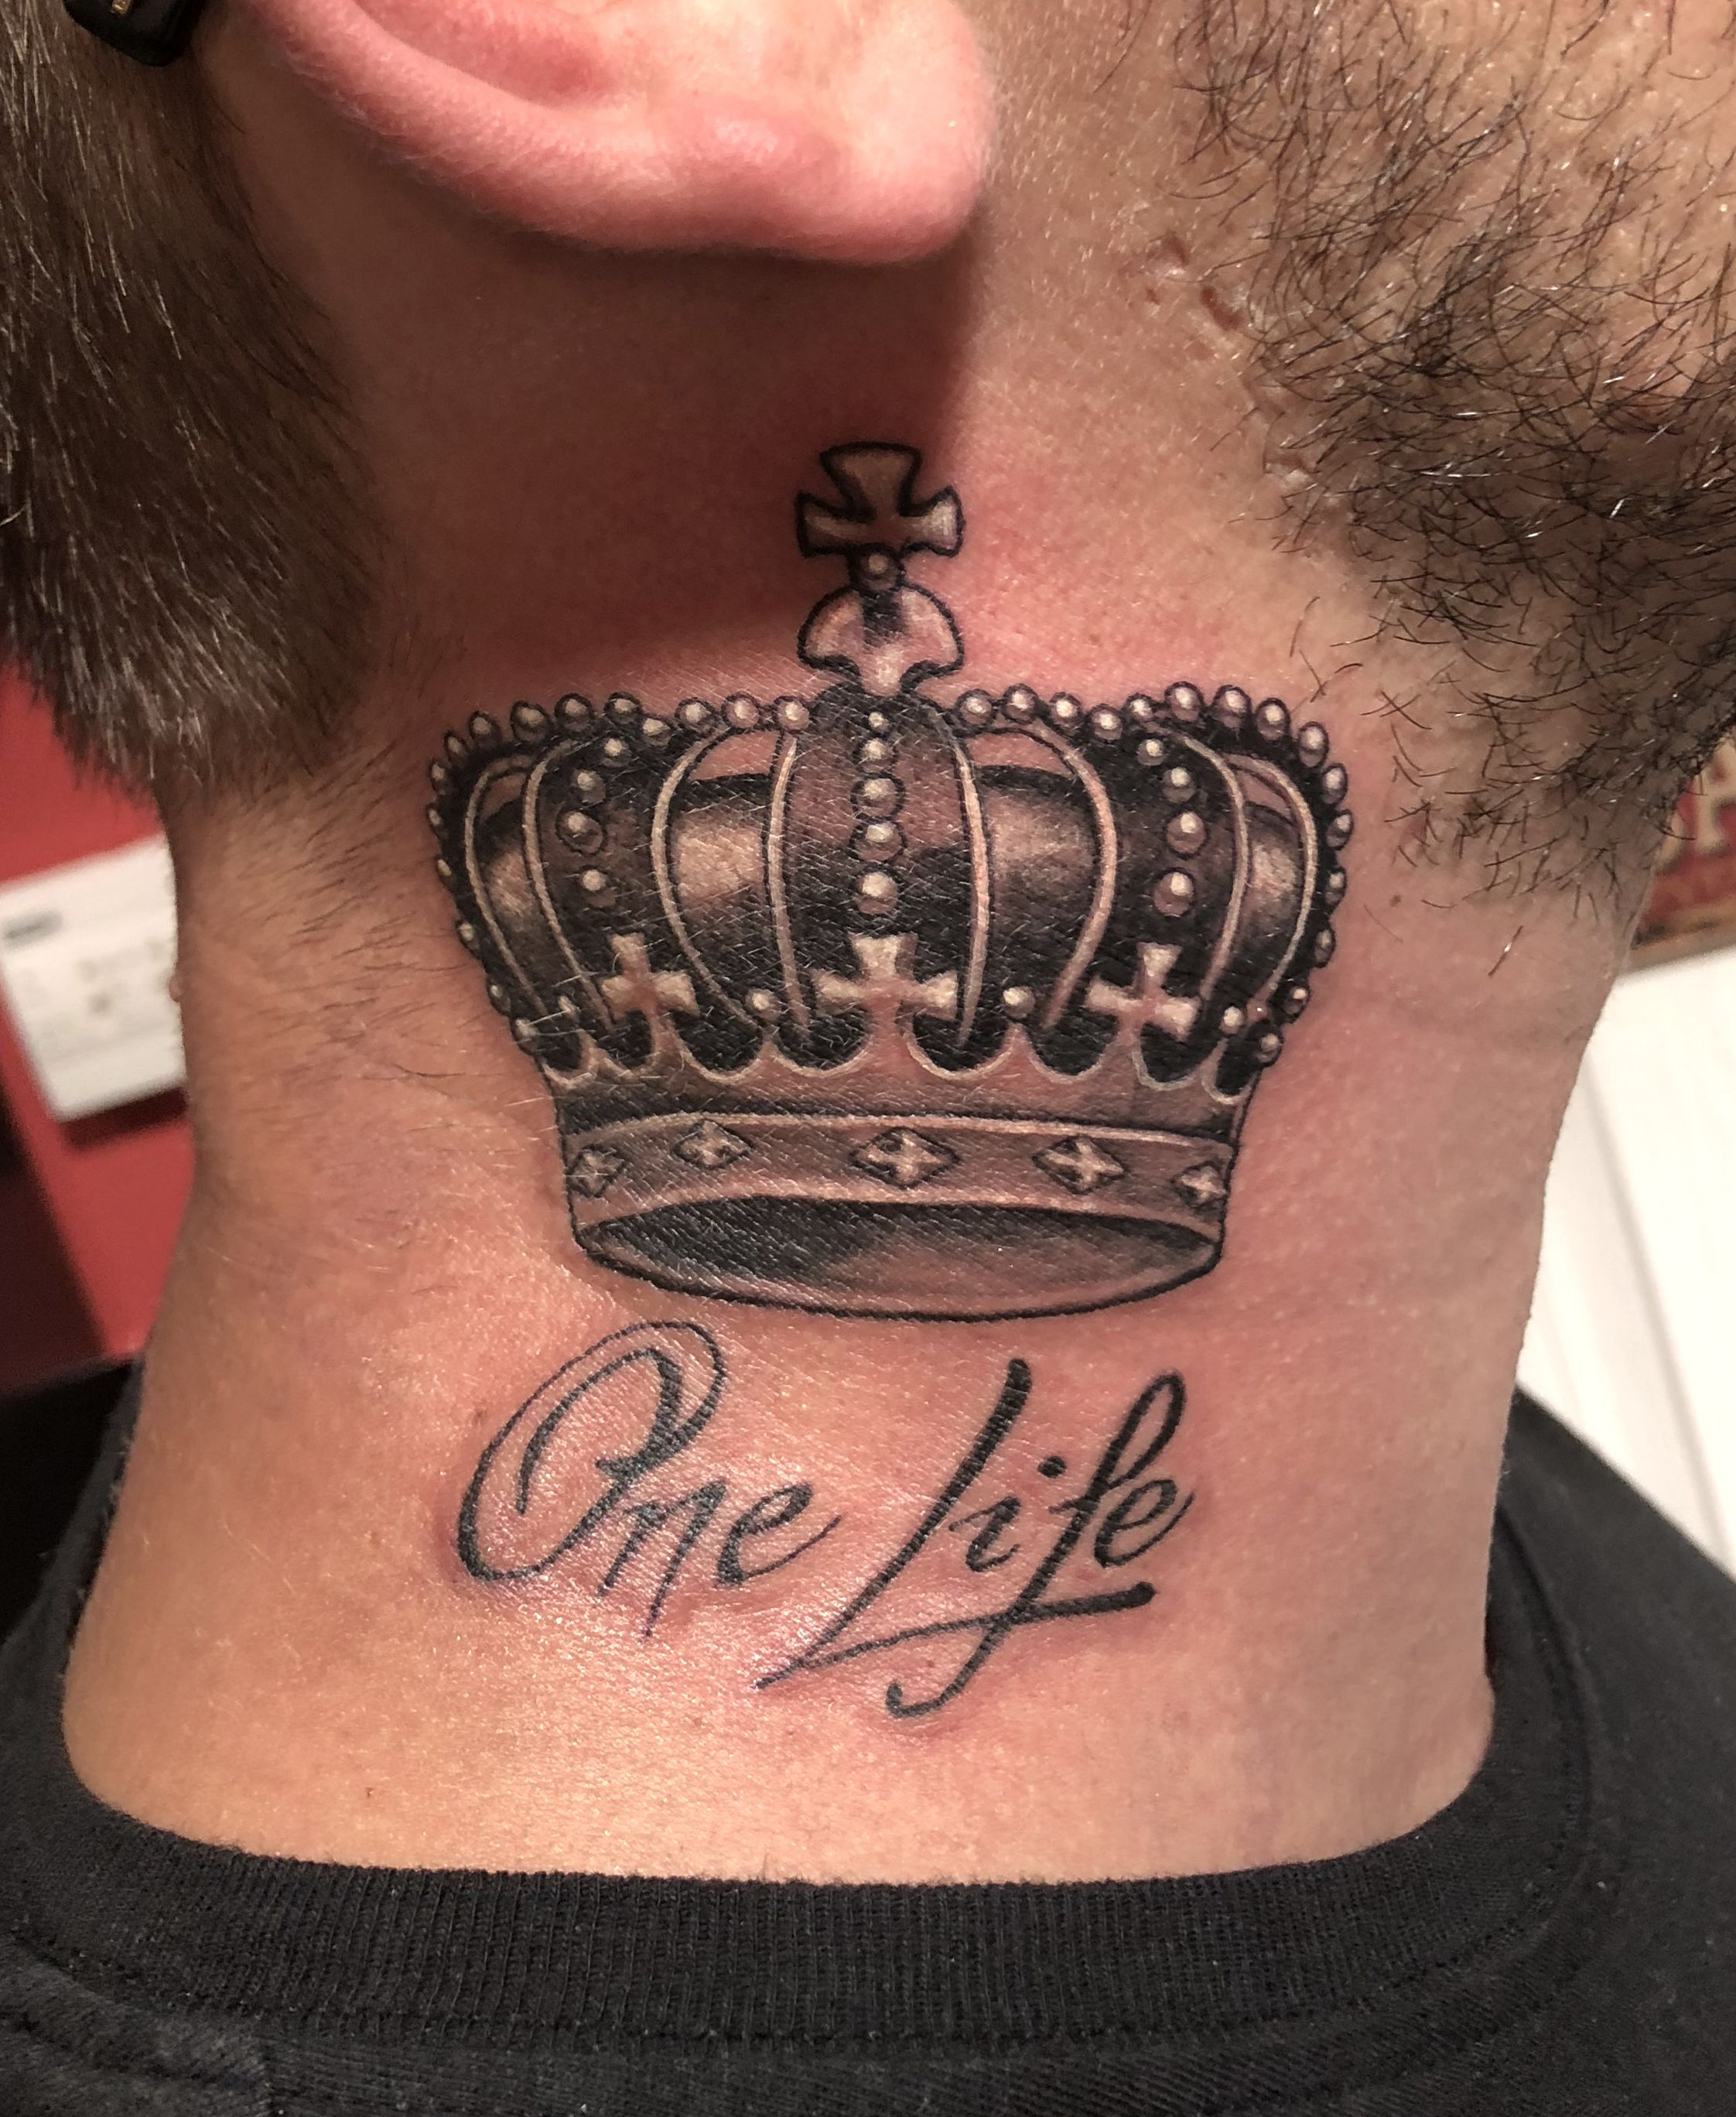 Westend Tattoo Westendtattooandpiercing Tattoo Neck Tattoo Crown Tattoo One Life Tattoo Small Tattoo Tetovalas Kis T Tatuagem Tatuagem Coroa Tatuagens